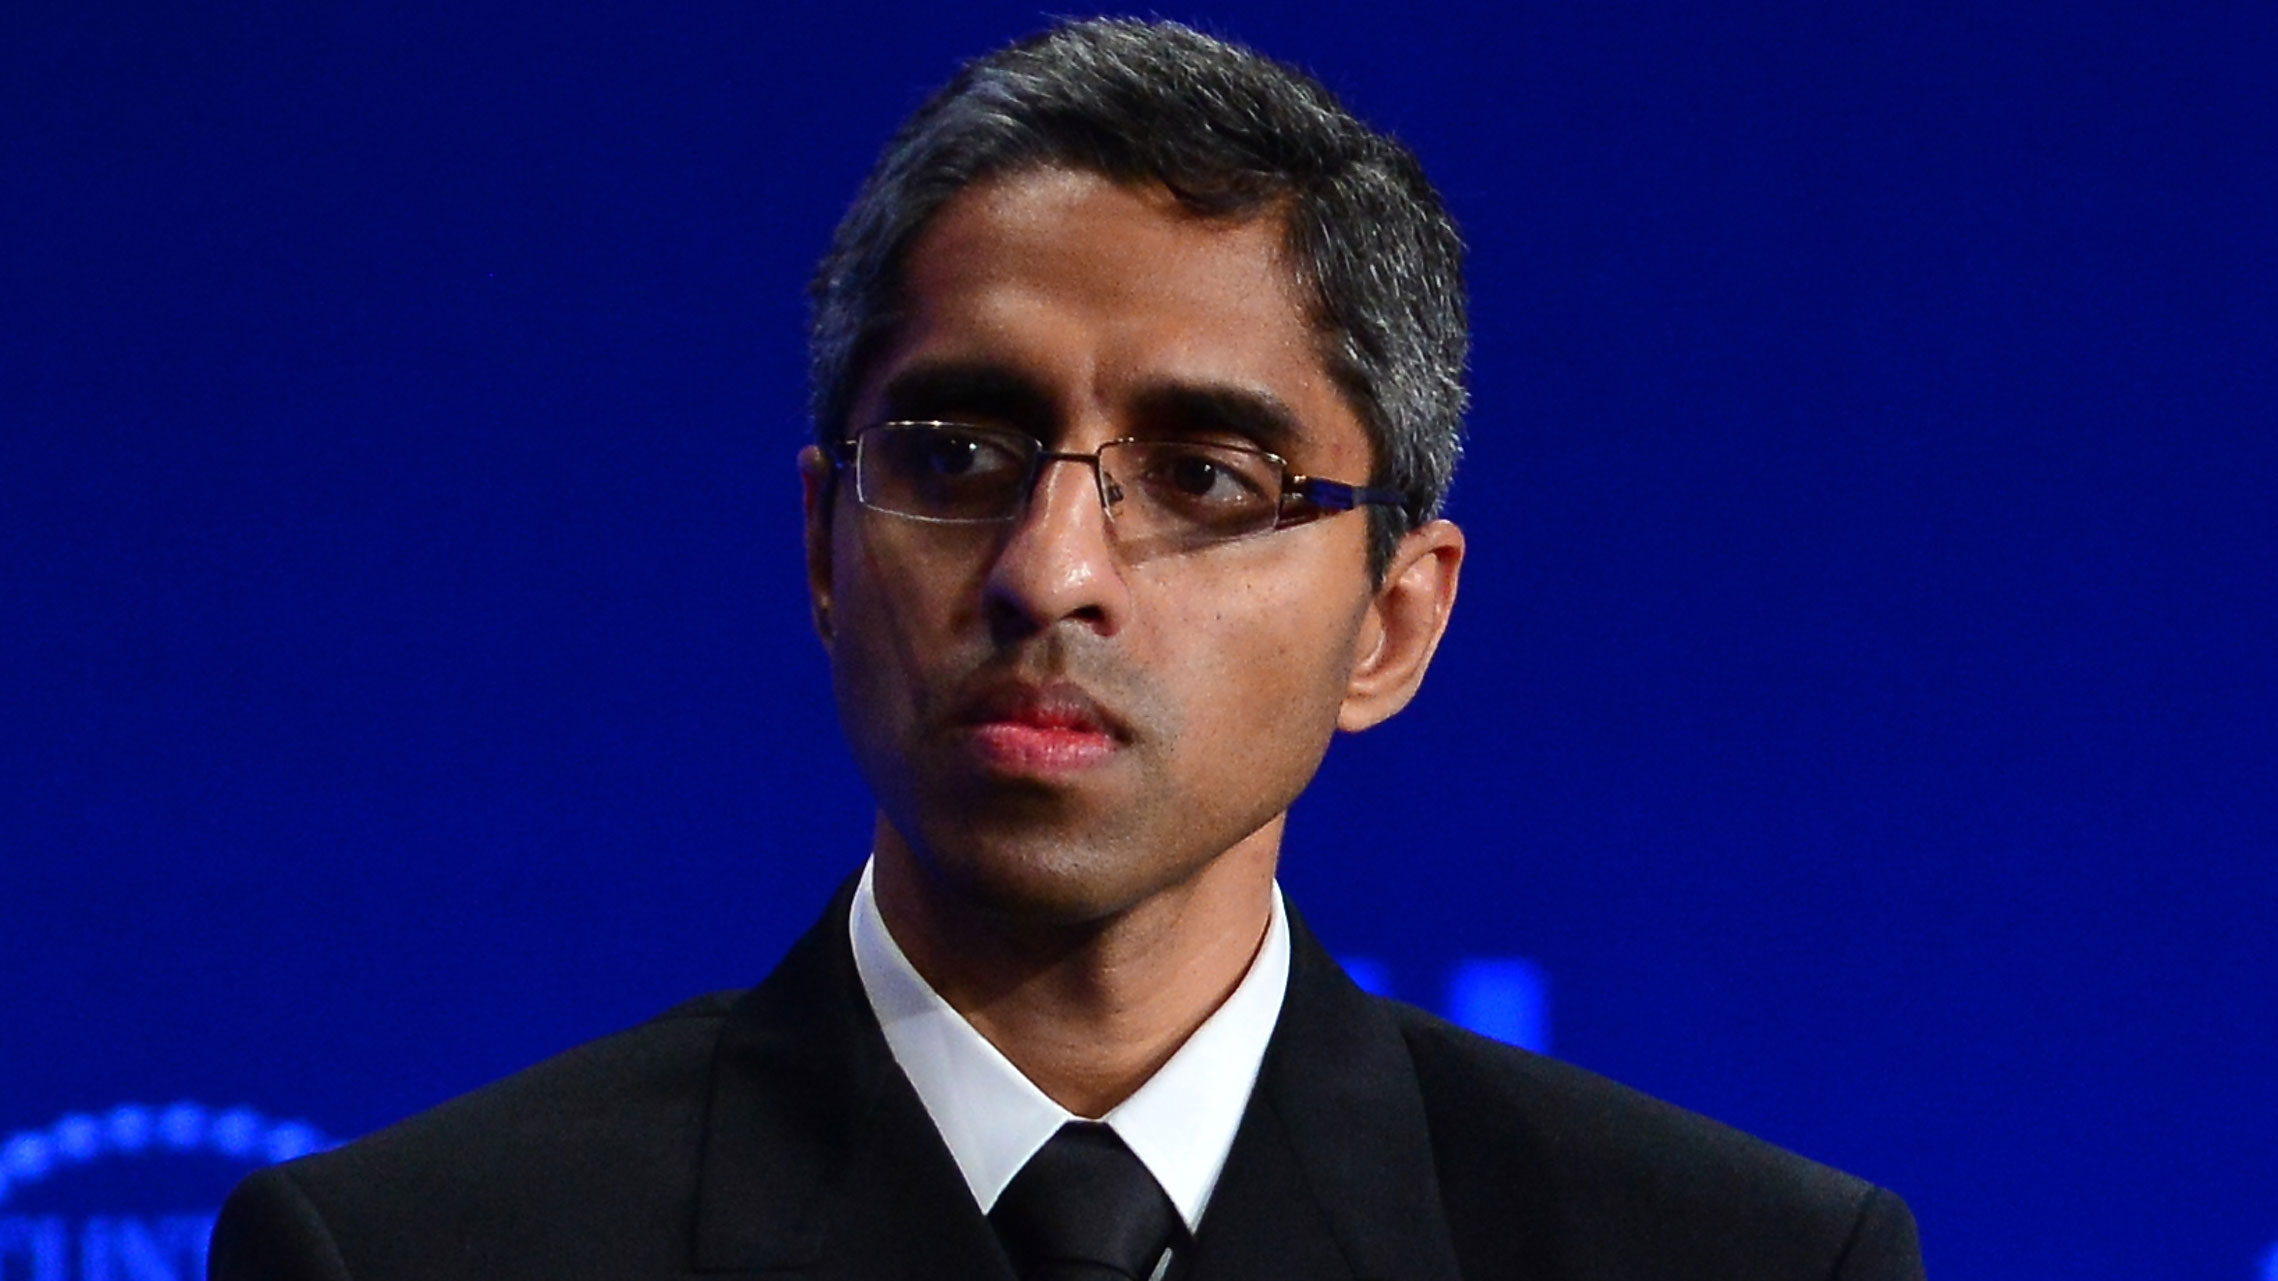 Dr. Vivek Murthy, then-surgeon general of the United States, attends an event in Miami on March 6, 2015.